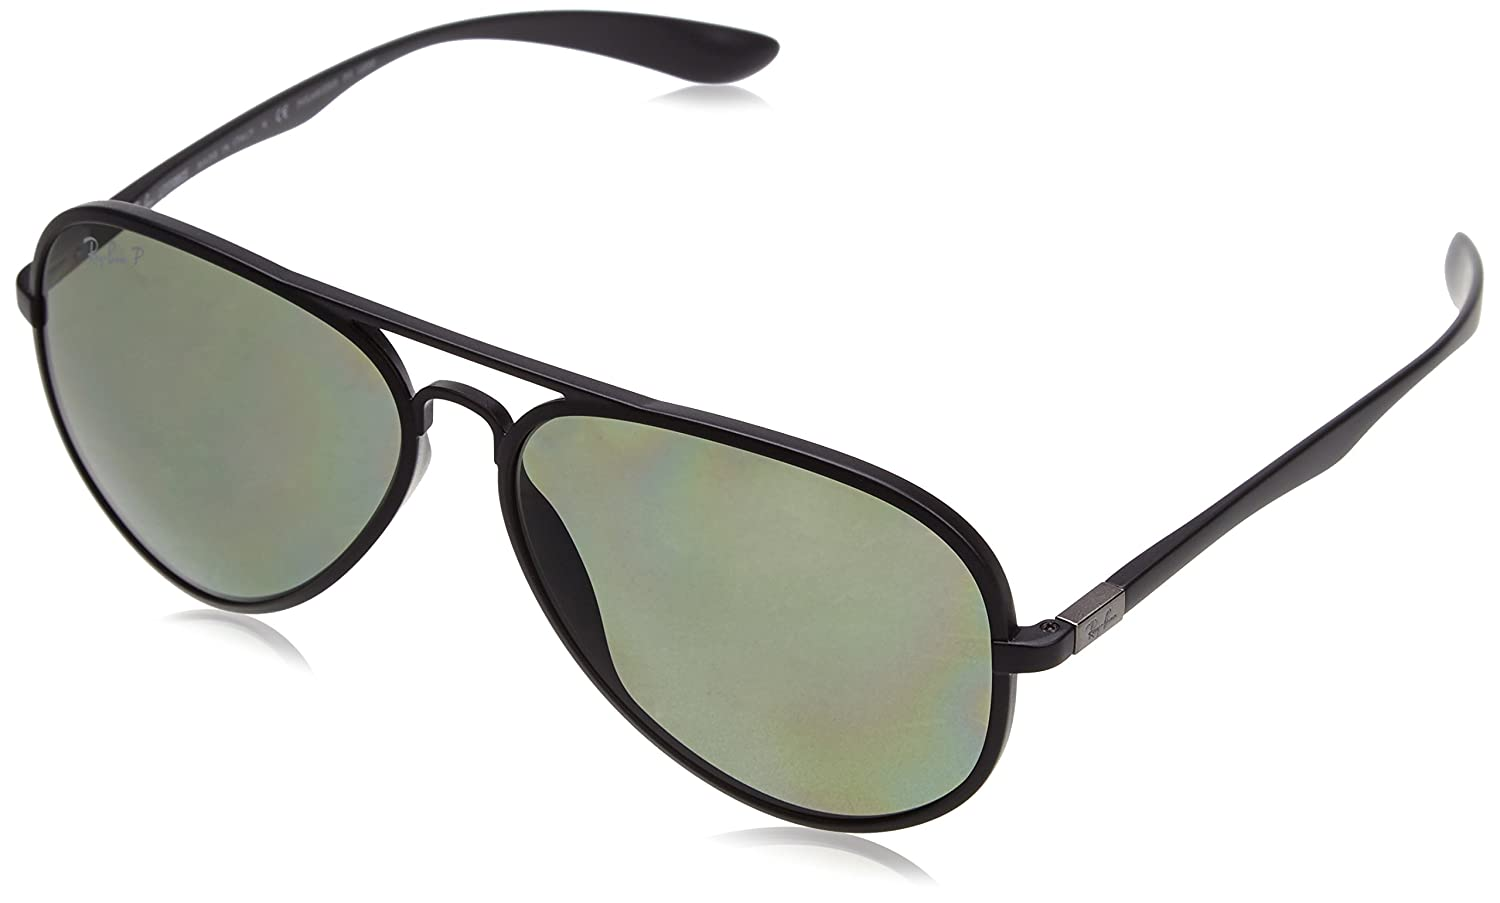 c384e533a8 Amazon.com  Ray Ban RB4180 Liteforce Tech Sunglasses 601S 9A Matte Black  (Polarized Green Lens)  Ray-Ban  Clothing